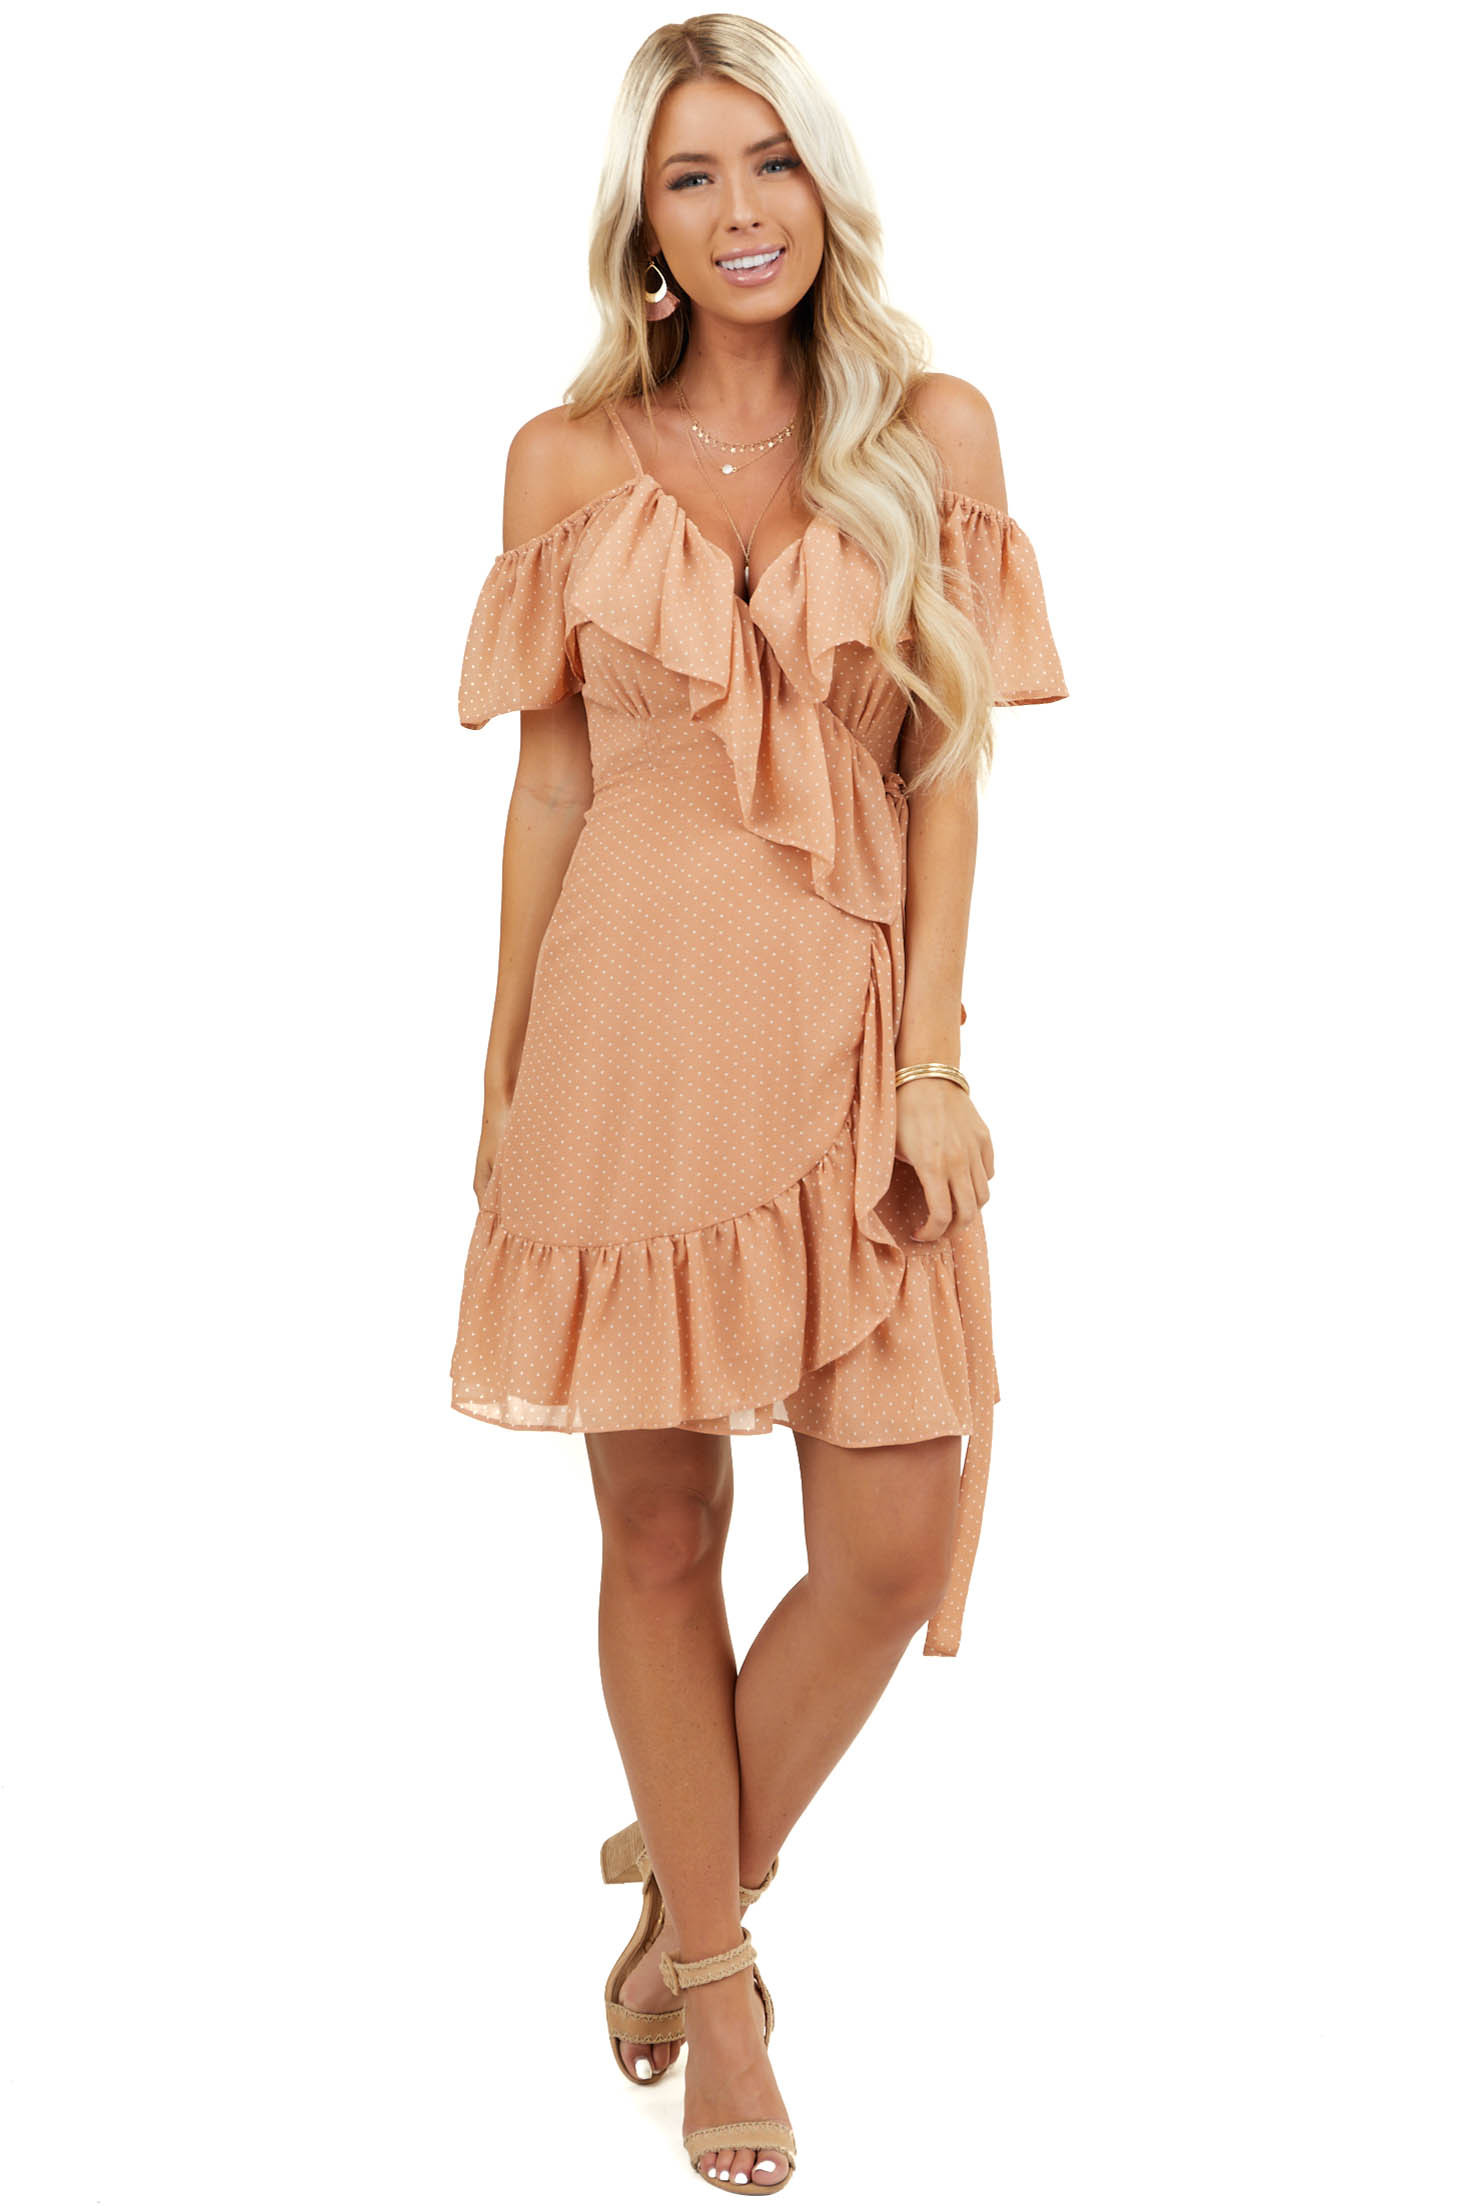 Dusty Peach Polka Dot Cold Shoulder Wrap Dress with Ruffles